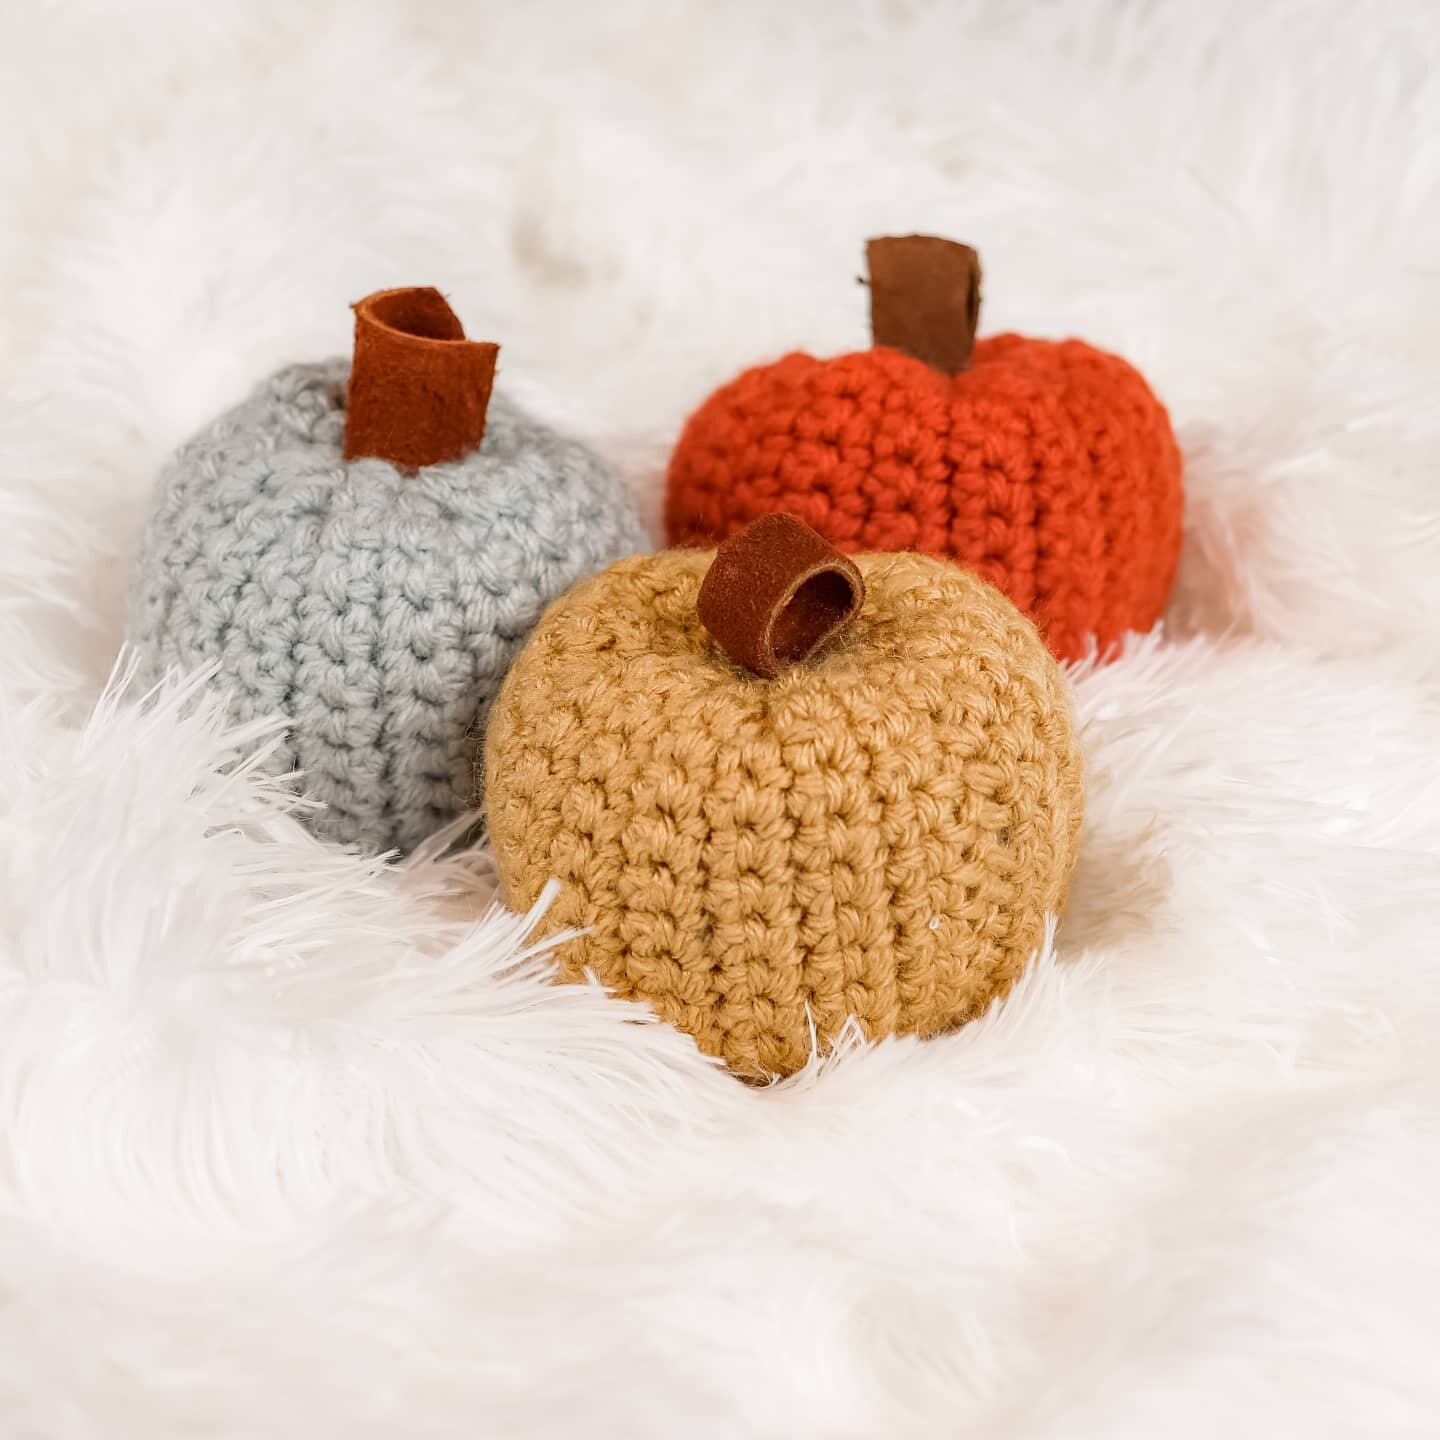 You guys are loving these easy beginner pumpkins, and I love that you love them! - Thinking about making a knitted pumpkin for free on my blog too. Actually, I have it nearly complete! ? - So stay tuned for that! ??? . . . #beginnercrochetpattern #crochetpumpkins #crochetforbeginners #crochetnovice #newtocrochet #yarnlove #fallcrochet #autumncrochet #crocheting #instacrochet #crochetcraftfair #craftfairseason #fallprep #cozyvibes #lionbrandyarn #knitstagram #yarnaholic #bhooked #thehappynow #chunkyknits #makersgonnamake #craftastherapy #moderncrochet #psimadethat #slowfashion #modernmaker #createmakeshare #craftsposure